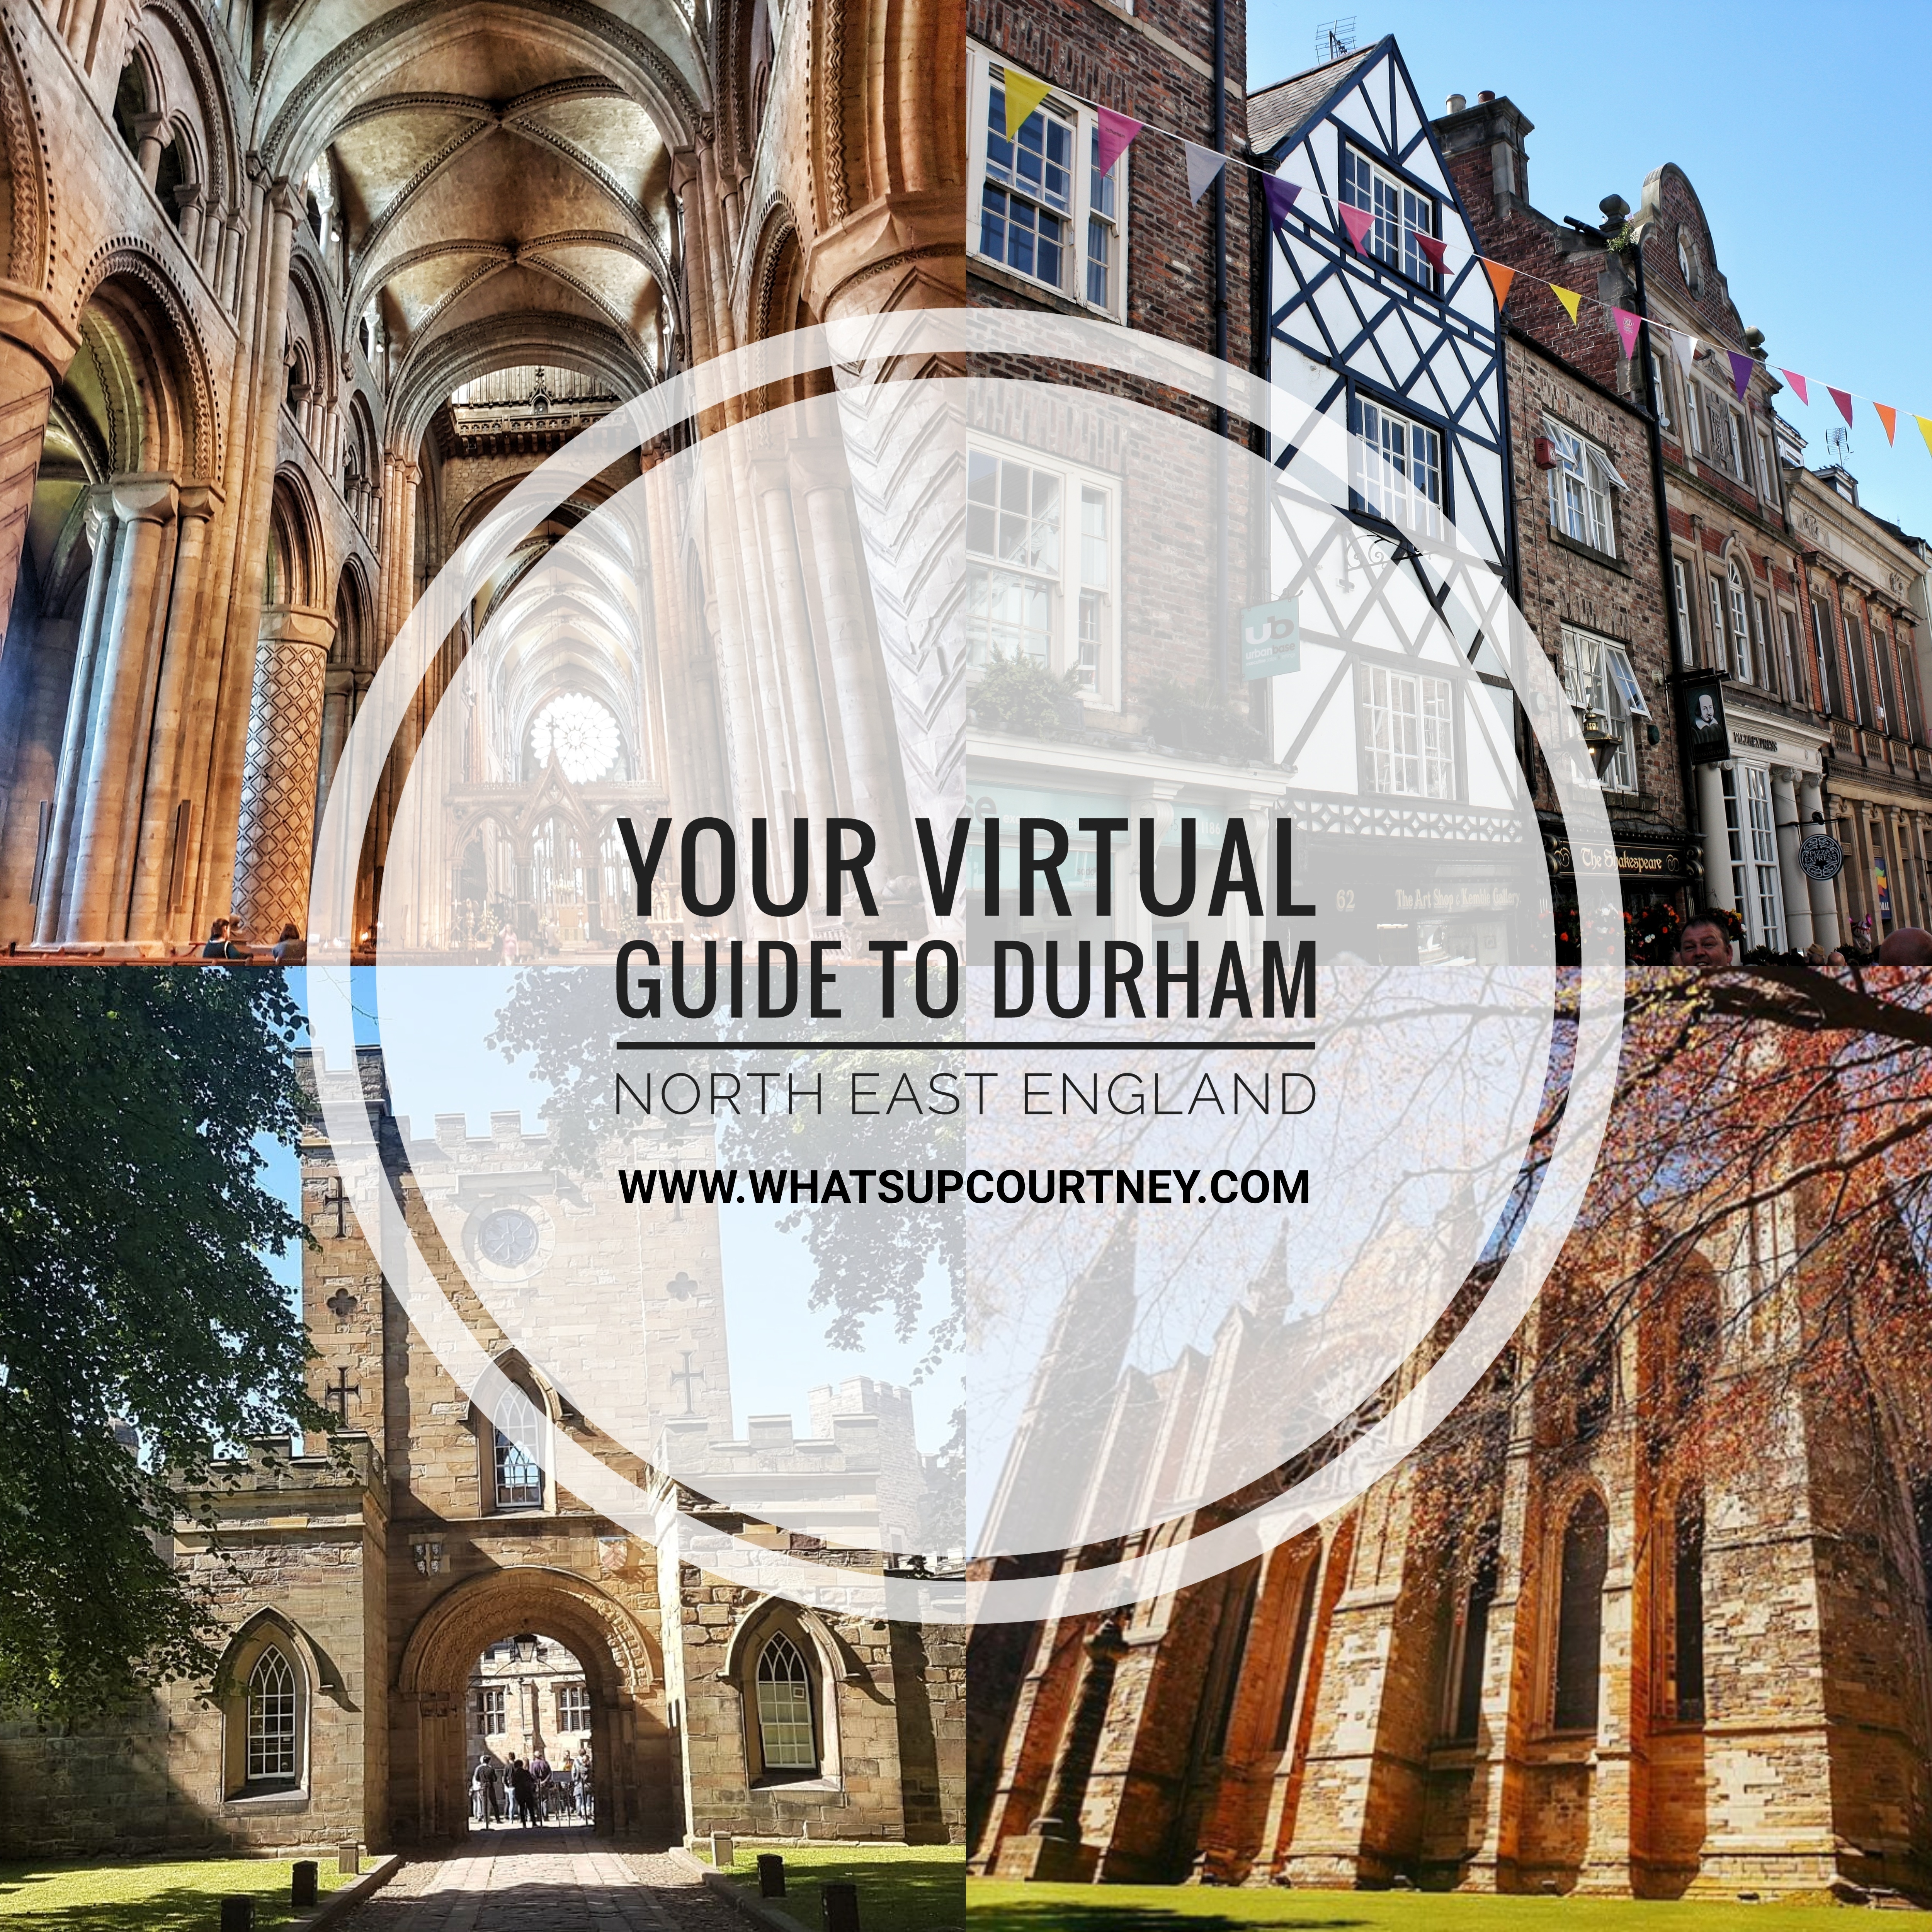 Your virtual guide to Durham UK